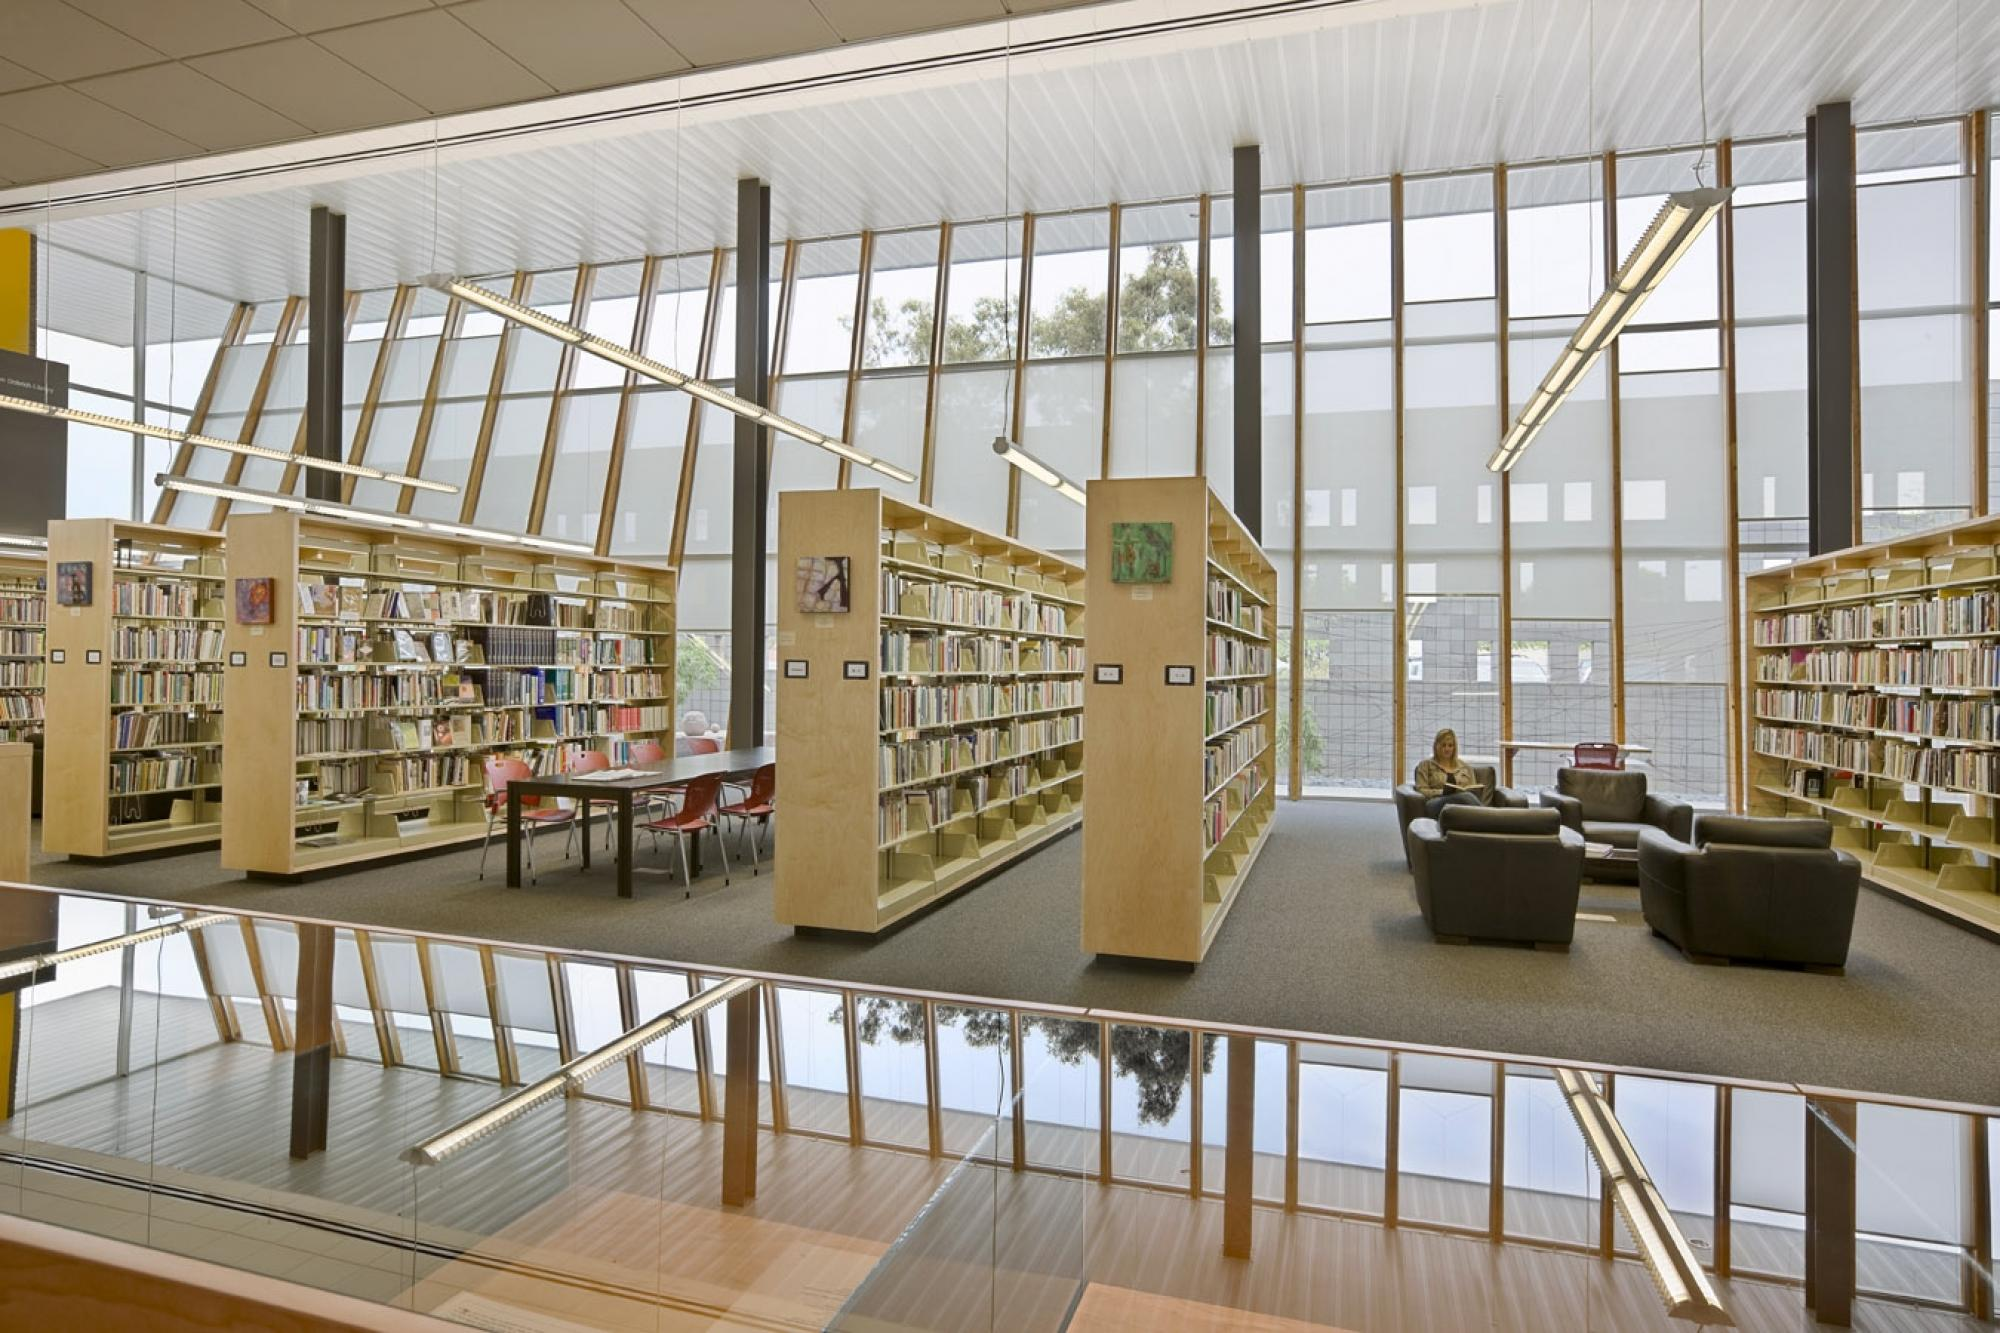 The Jeremy Ingalls Gallery looks into the Michael and Helen Dobrich Library within the Helen S. Schaefer Building.